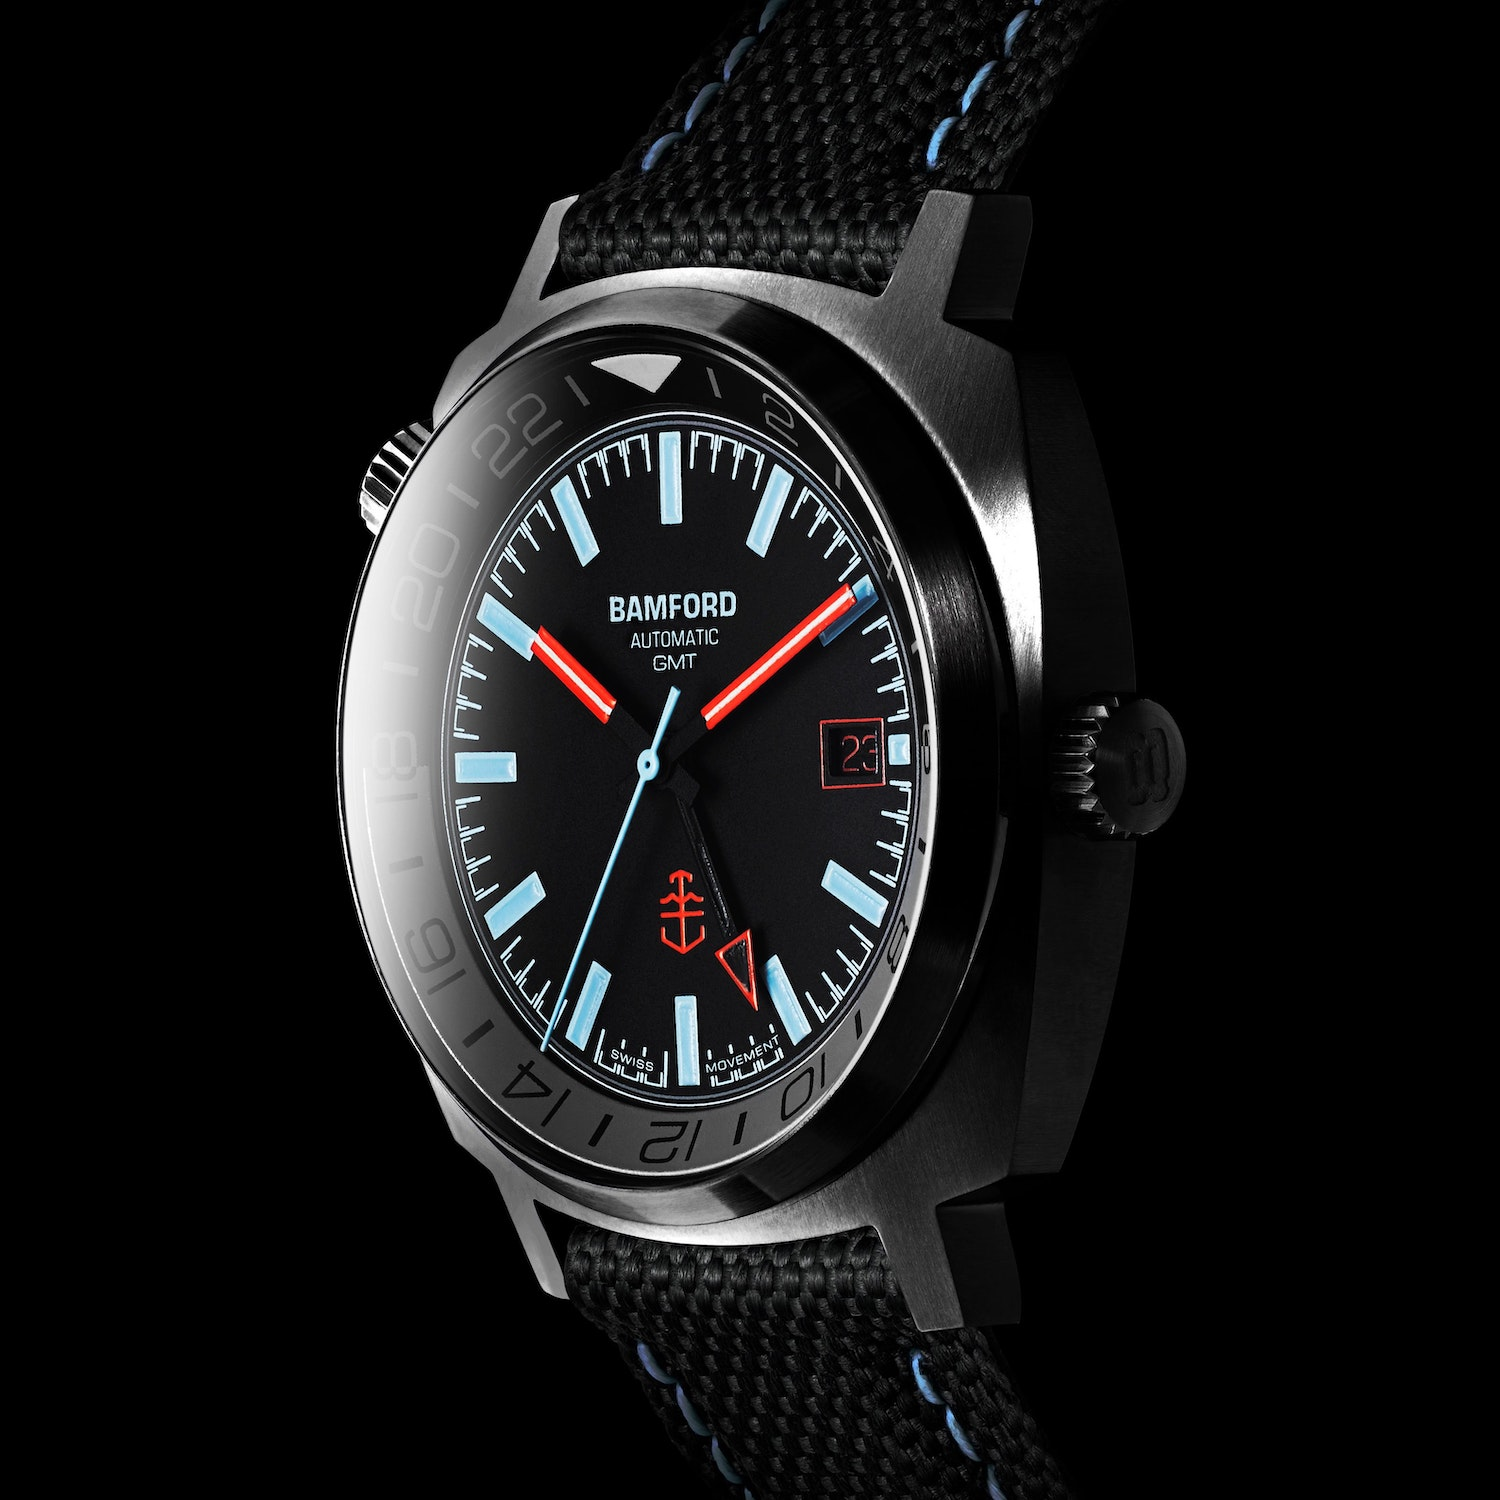 Bamford x Time+Tide GMT2 Watch